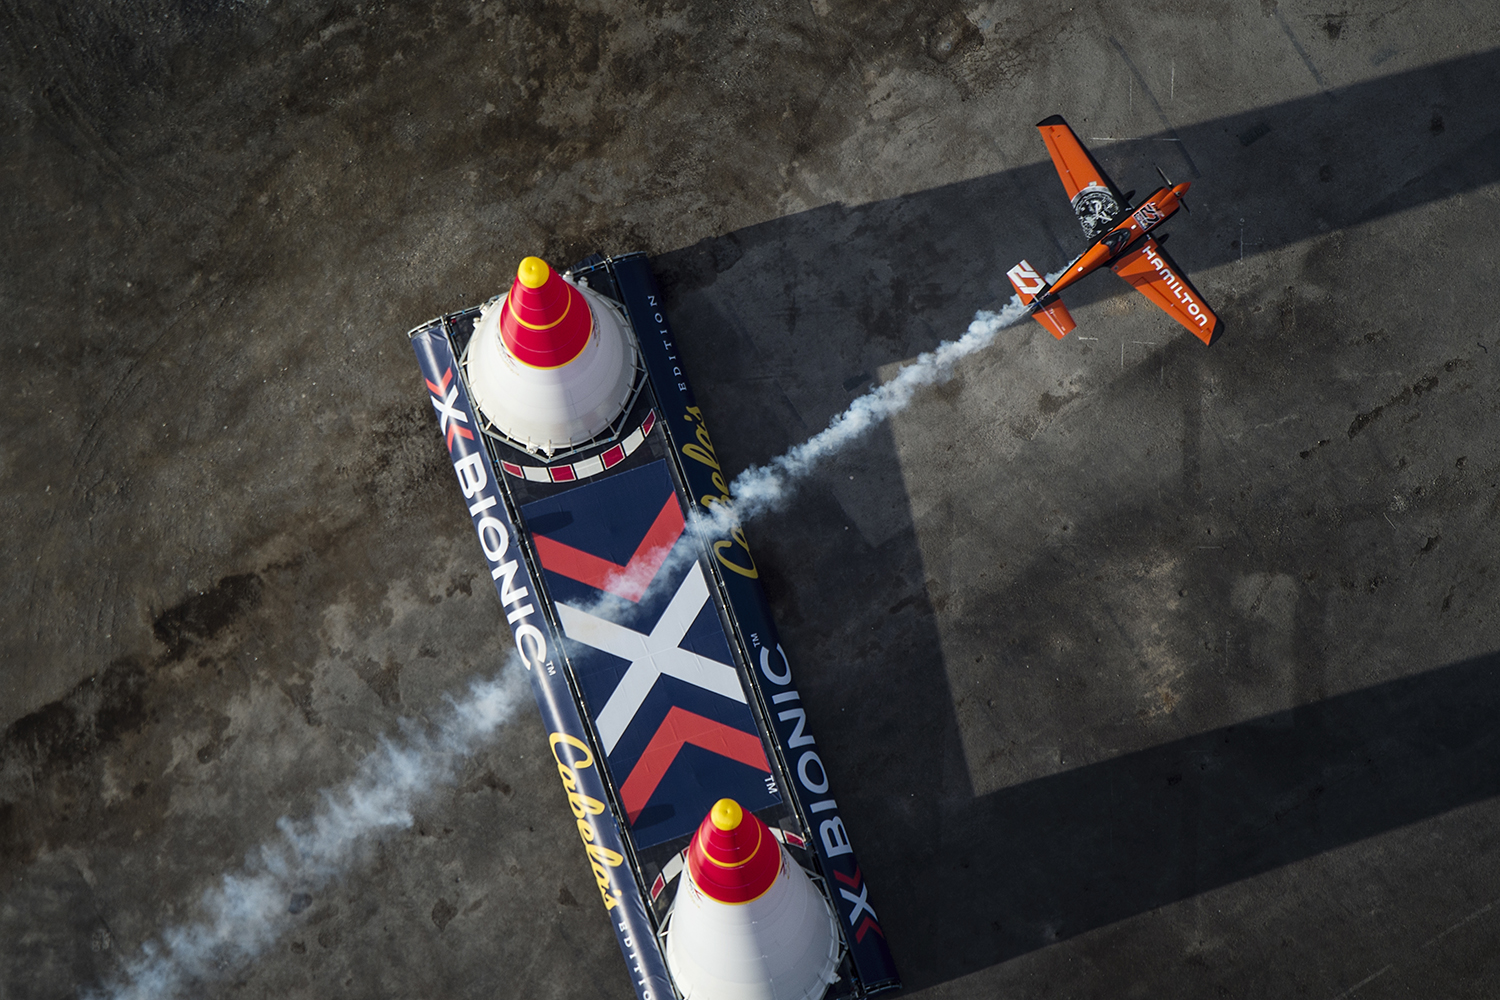 Nicolas Ivanoff of France performs during qualifying day of the eighth stage of the Red Bull Air Race World Championship at the Las Vegas Motor Speedway in Las Vegas, Nevada, United States on October 17, 2015. // Joerg Mitter / Red Bull Content Pool // P-20151018-00149 // Usage for editorial use only // Please go to www.redbullcontentpool.com for further information. //